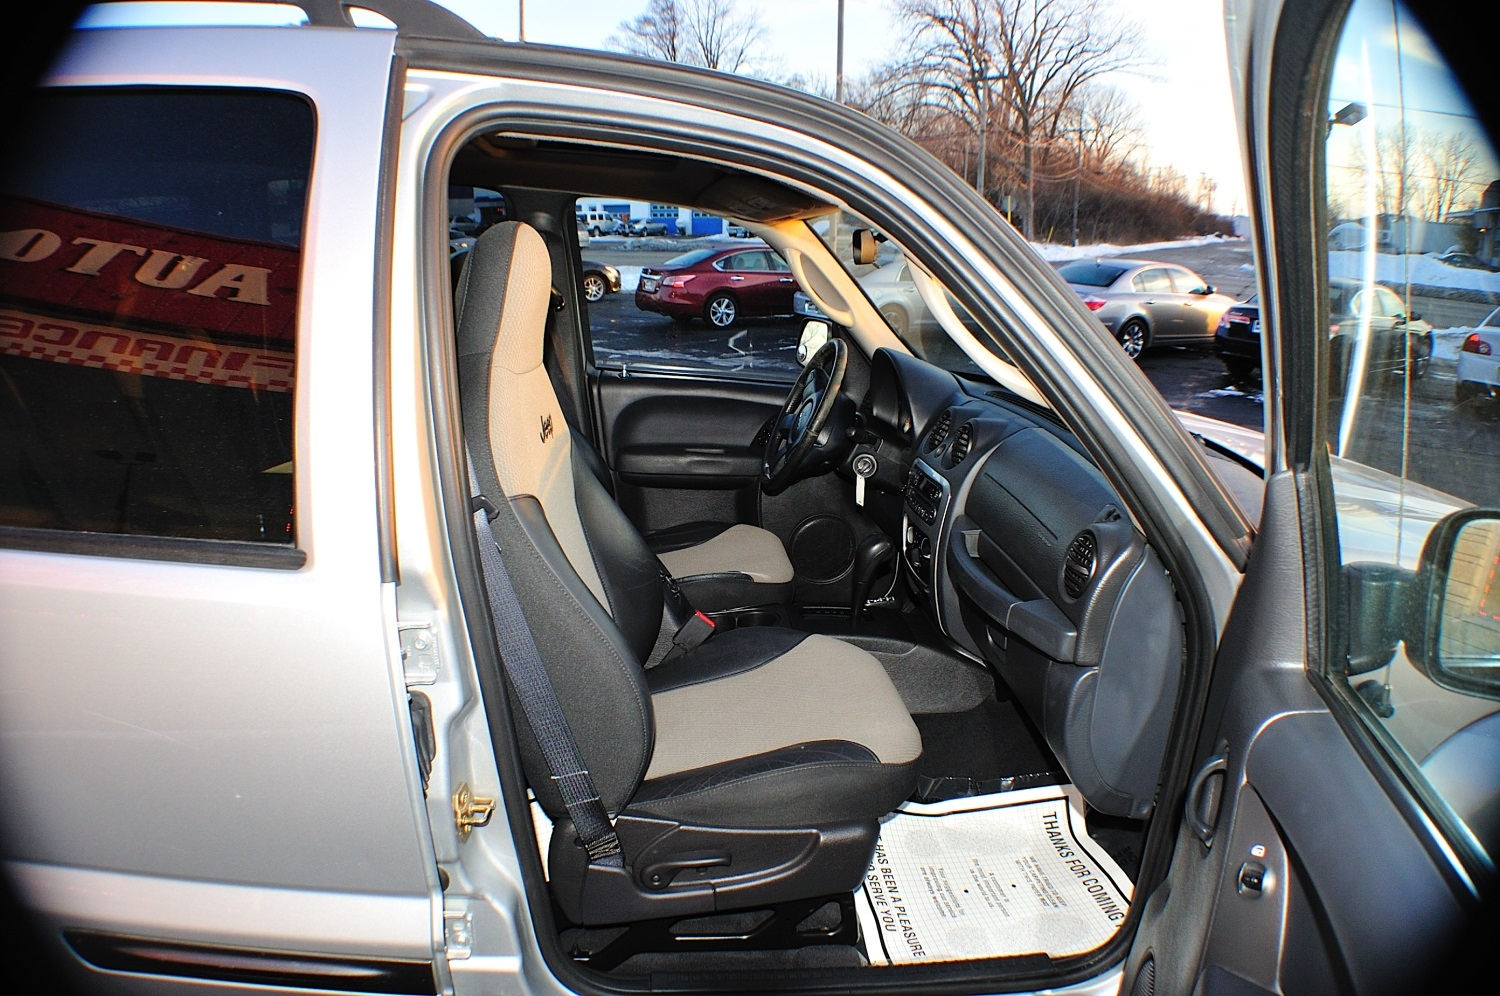 2004 Jeep Liberty Silver 4x4 Used SUV Sale Libertyville Lincolnshire Lindenhurst